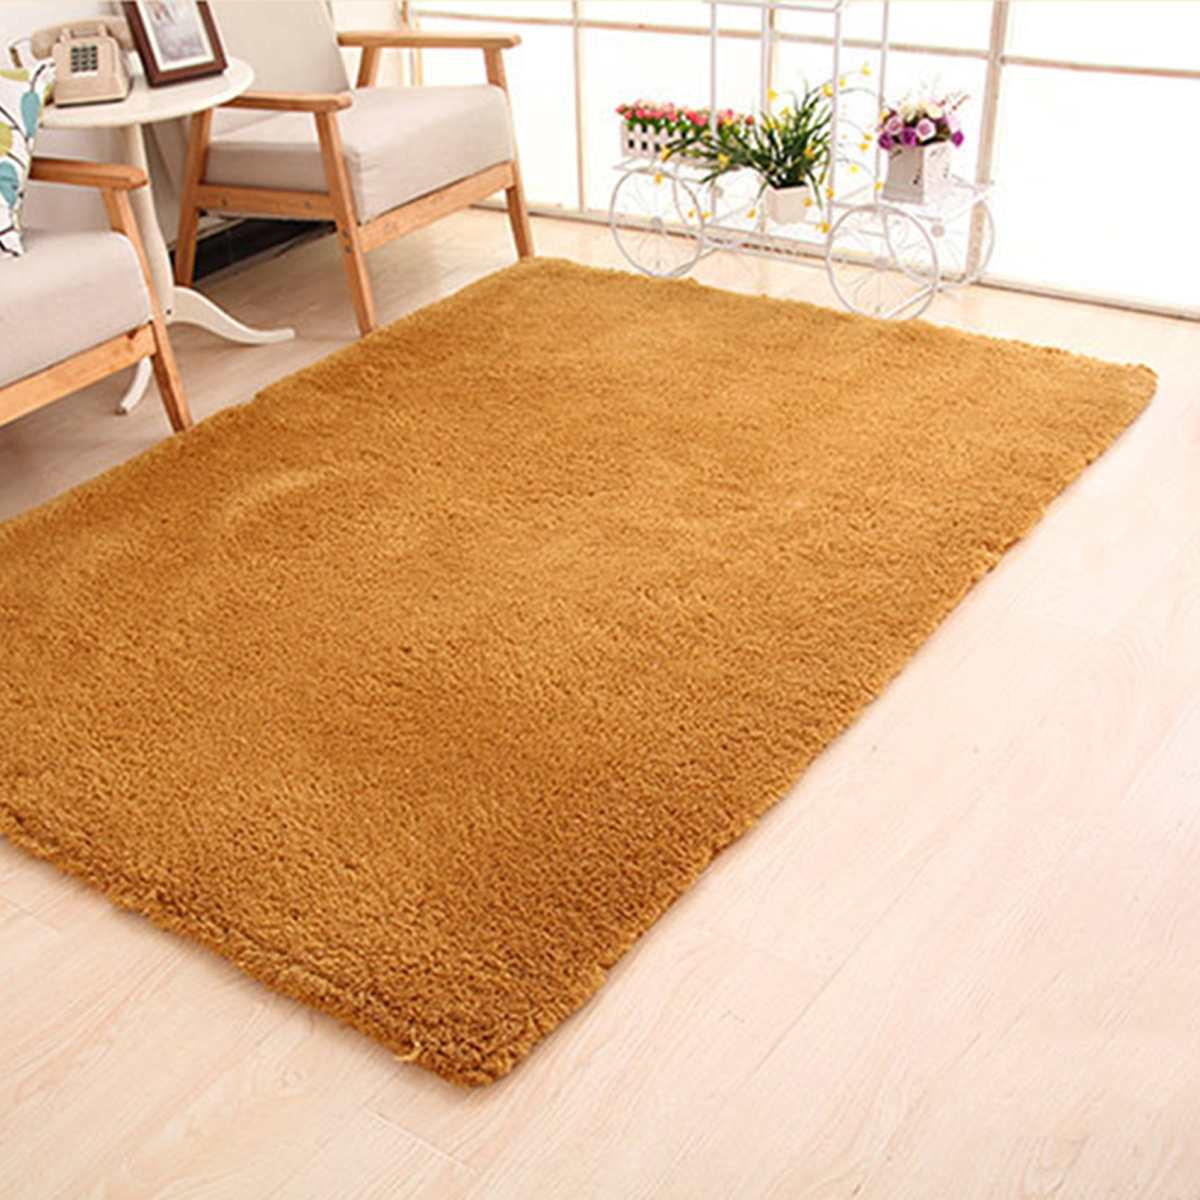 Soft Fluffy Shaggy Living Room Carpet Bedroom Bathroom Anti-skid Carpet Sofa Floor Mat Pad Area Rug Large 160x200cm Home Decor